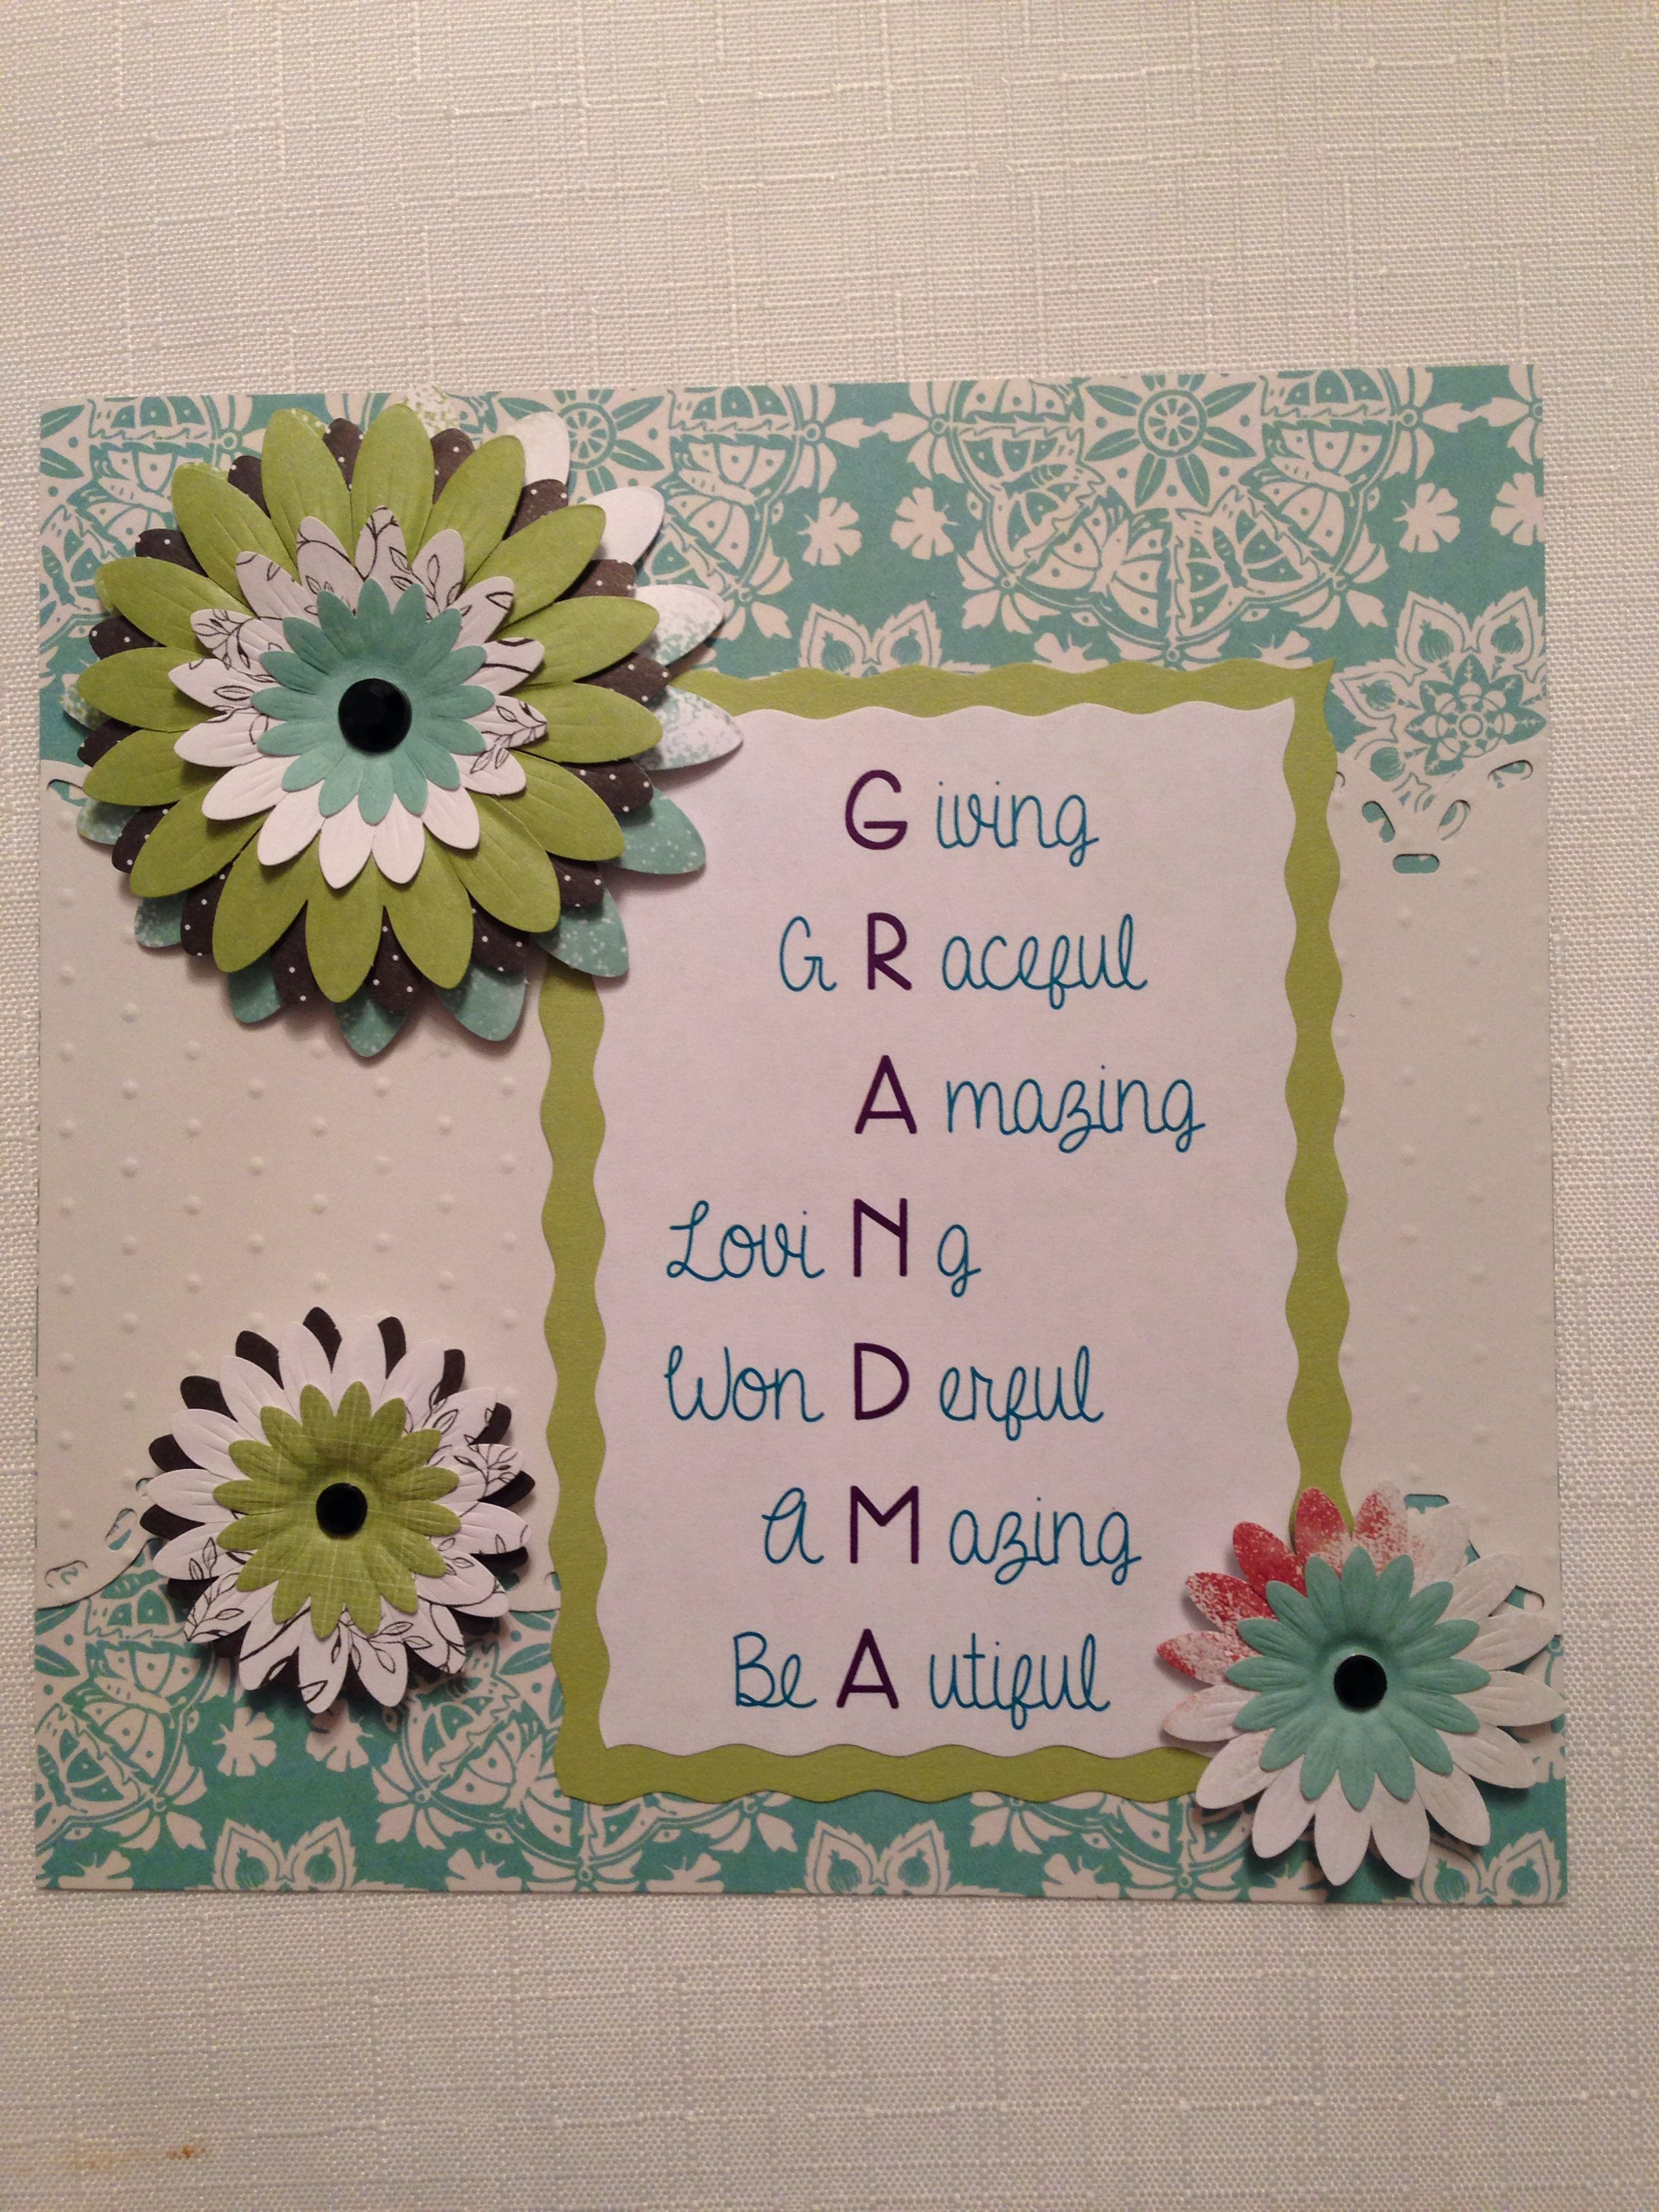 Pin By Christine Jarka On Diy Crafts Card Making Birthday Diy Mother S Day Cards For Grandma Mother S Day Diy